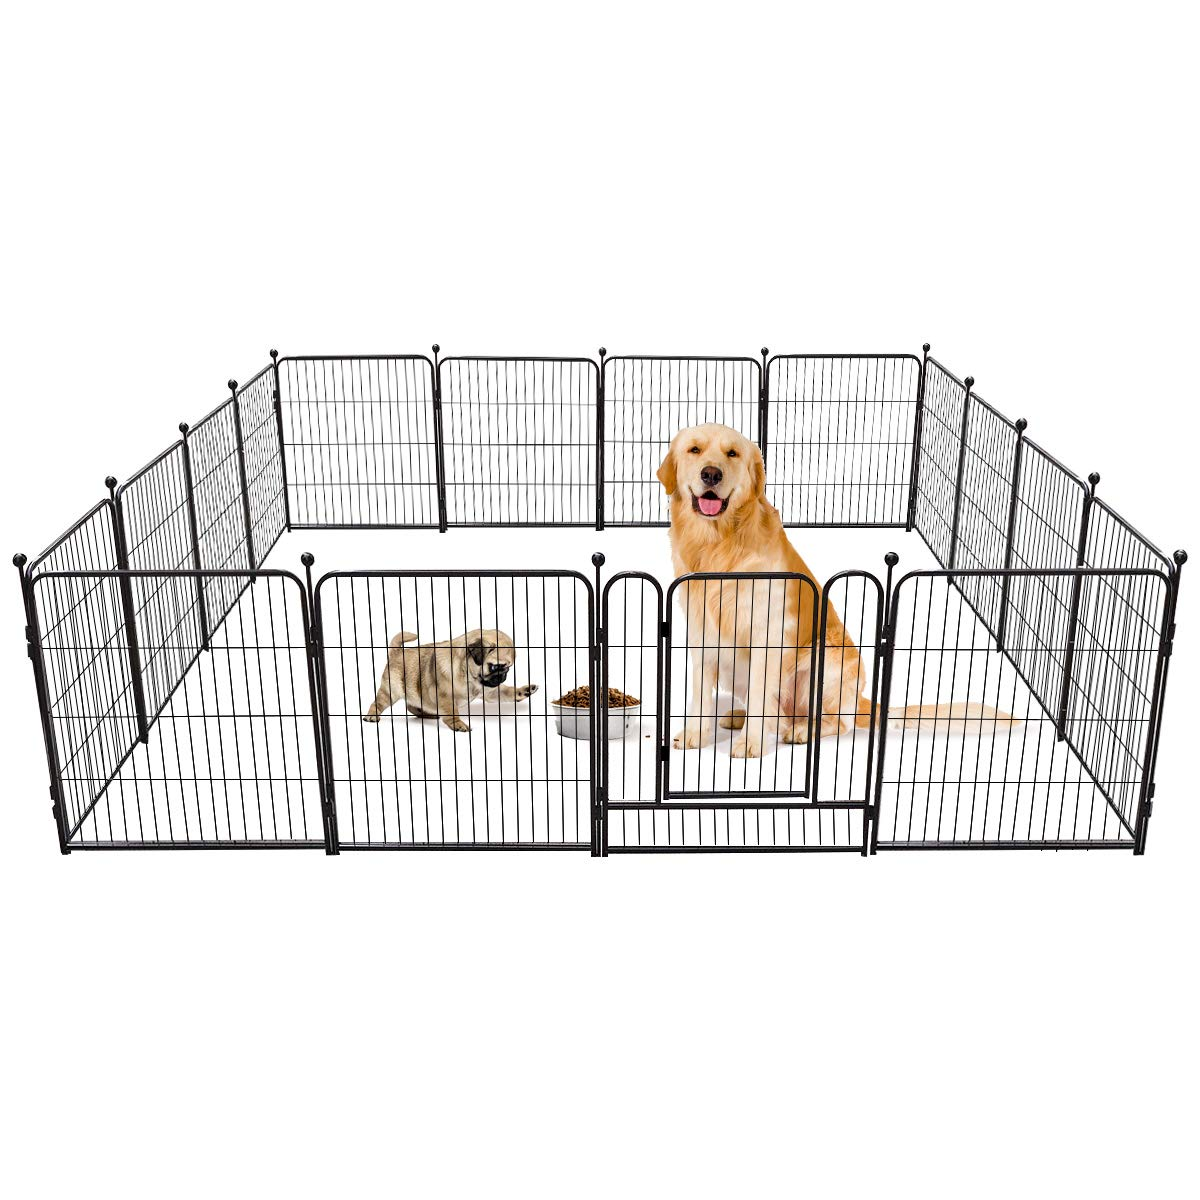 TOOCA Dog Pen RV Dog Fence Playpens for Dogs, 32H x 27L inches, 16 Panels, Metal, Outdoor Indoor, Protect Design Poles, Foldable Barrier with Door, Black by TOOCA